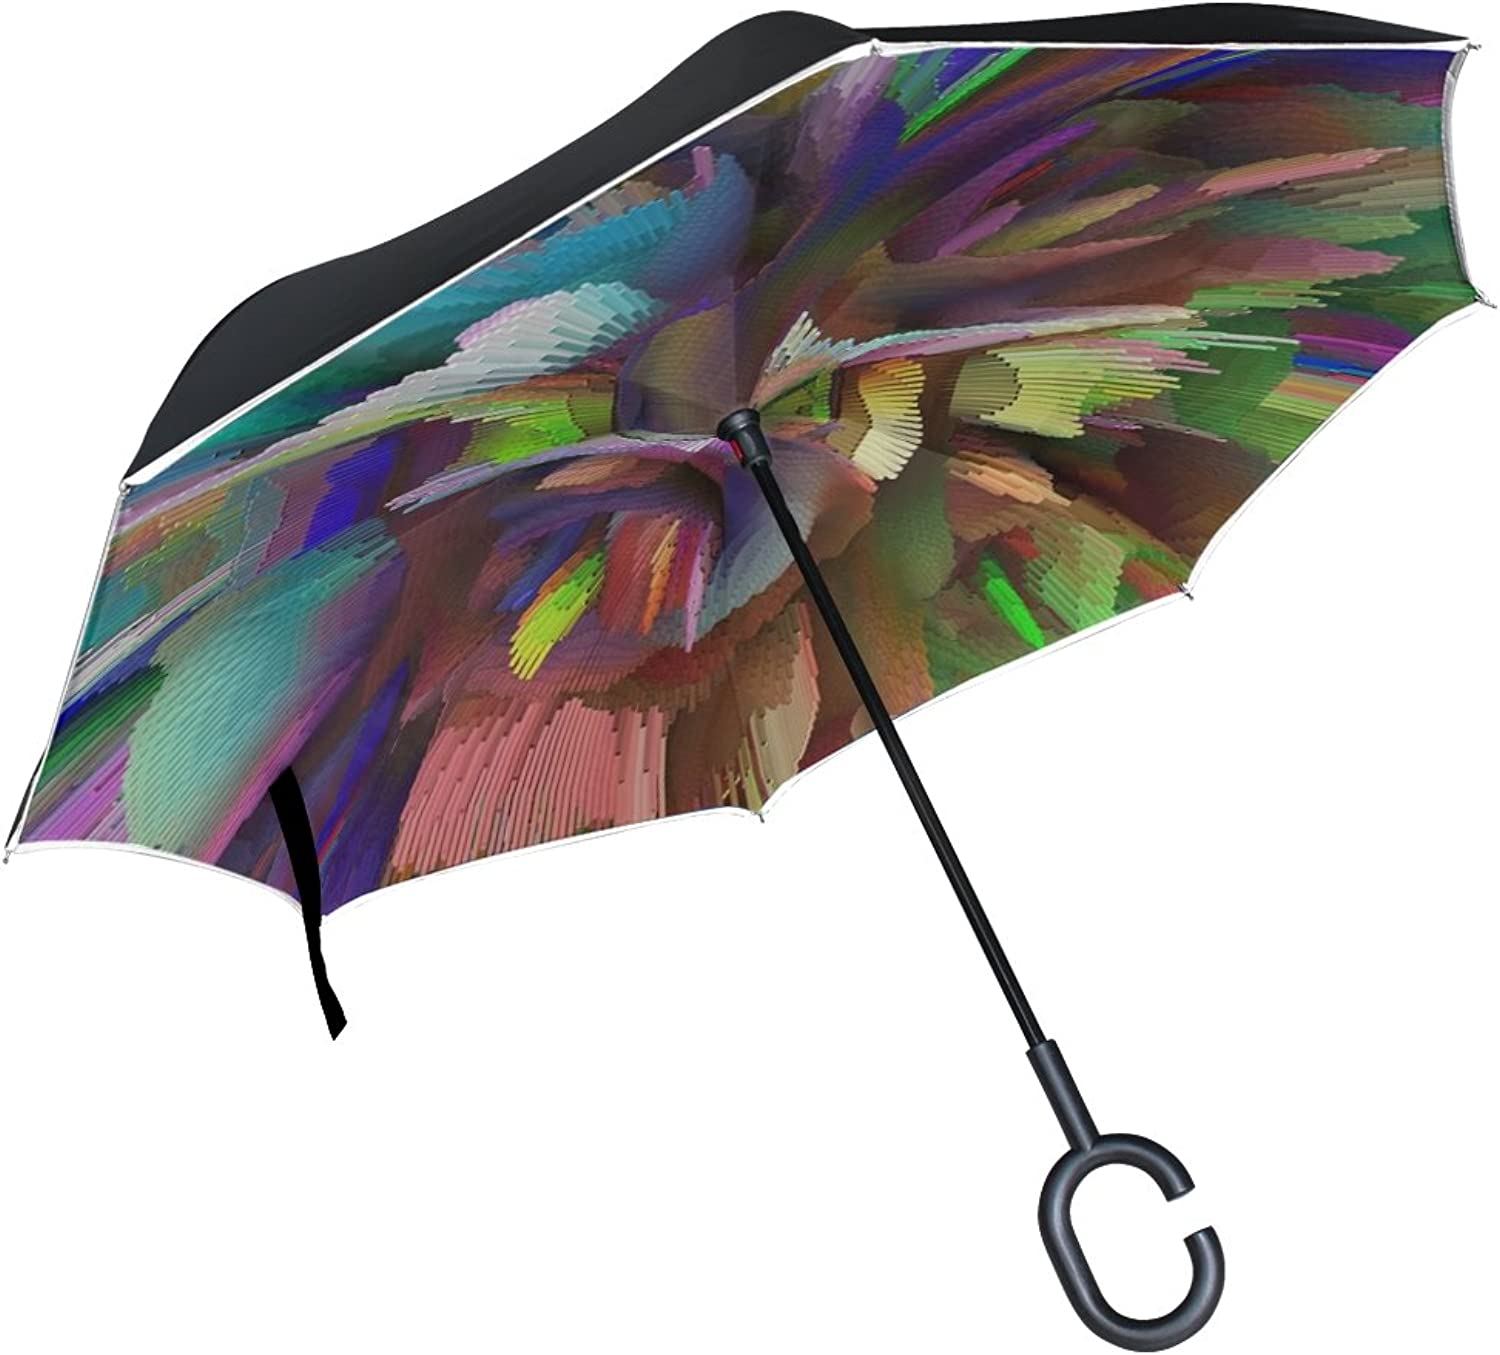 Double Layer Ingreened Bomb Pattern Explode Pop Destruction Umbrellas Reverse Folding Umbrella Windproof Uv Predection Big Straight Umbrella for Car Rain Outdoor with CShaped Handle